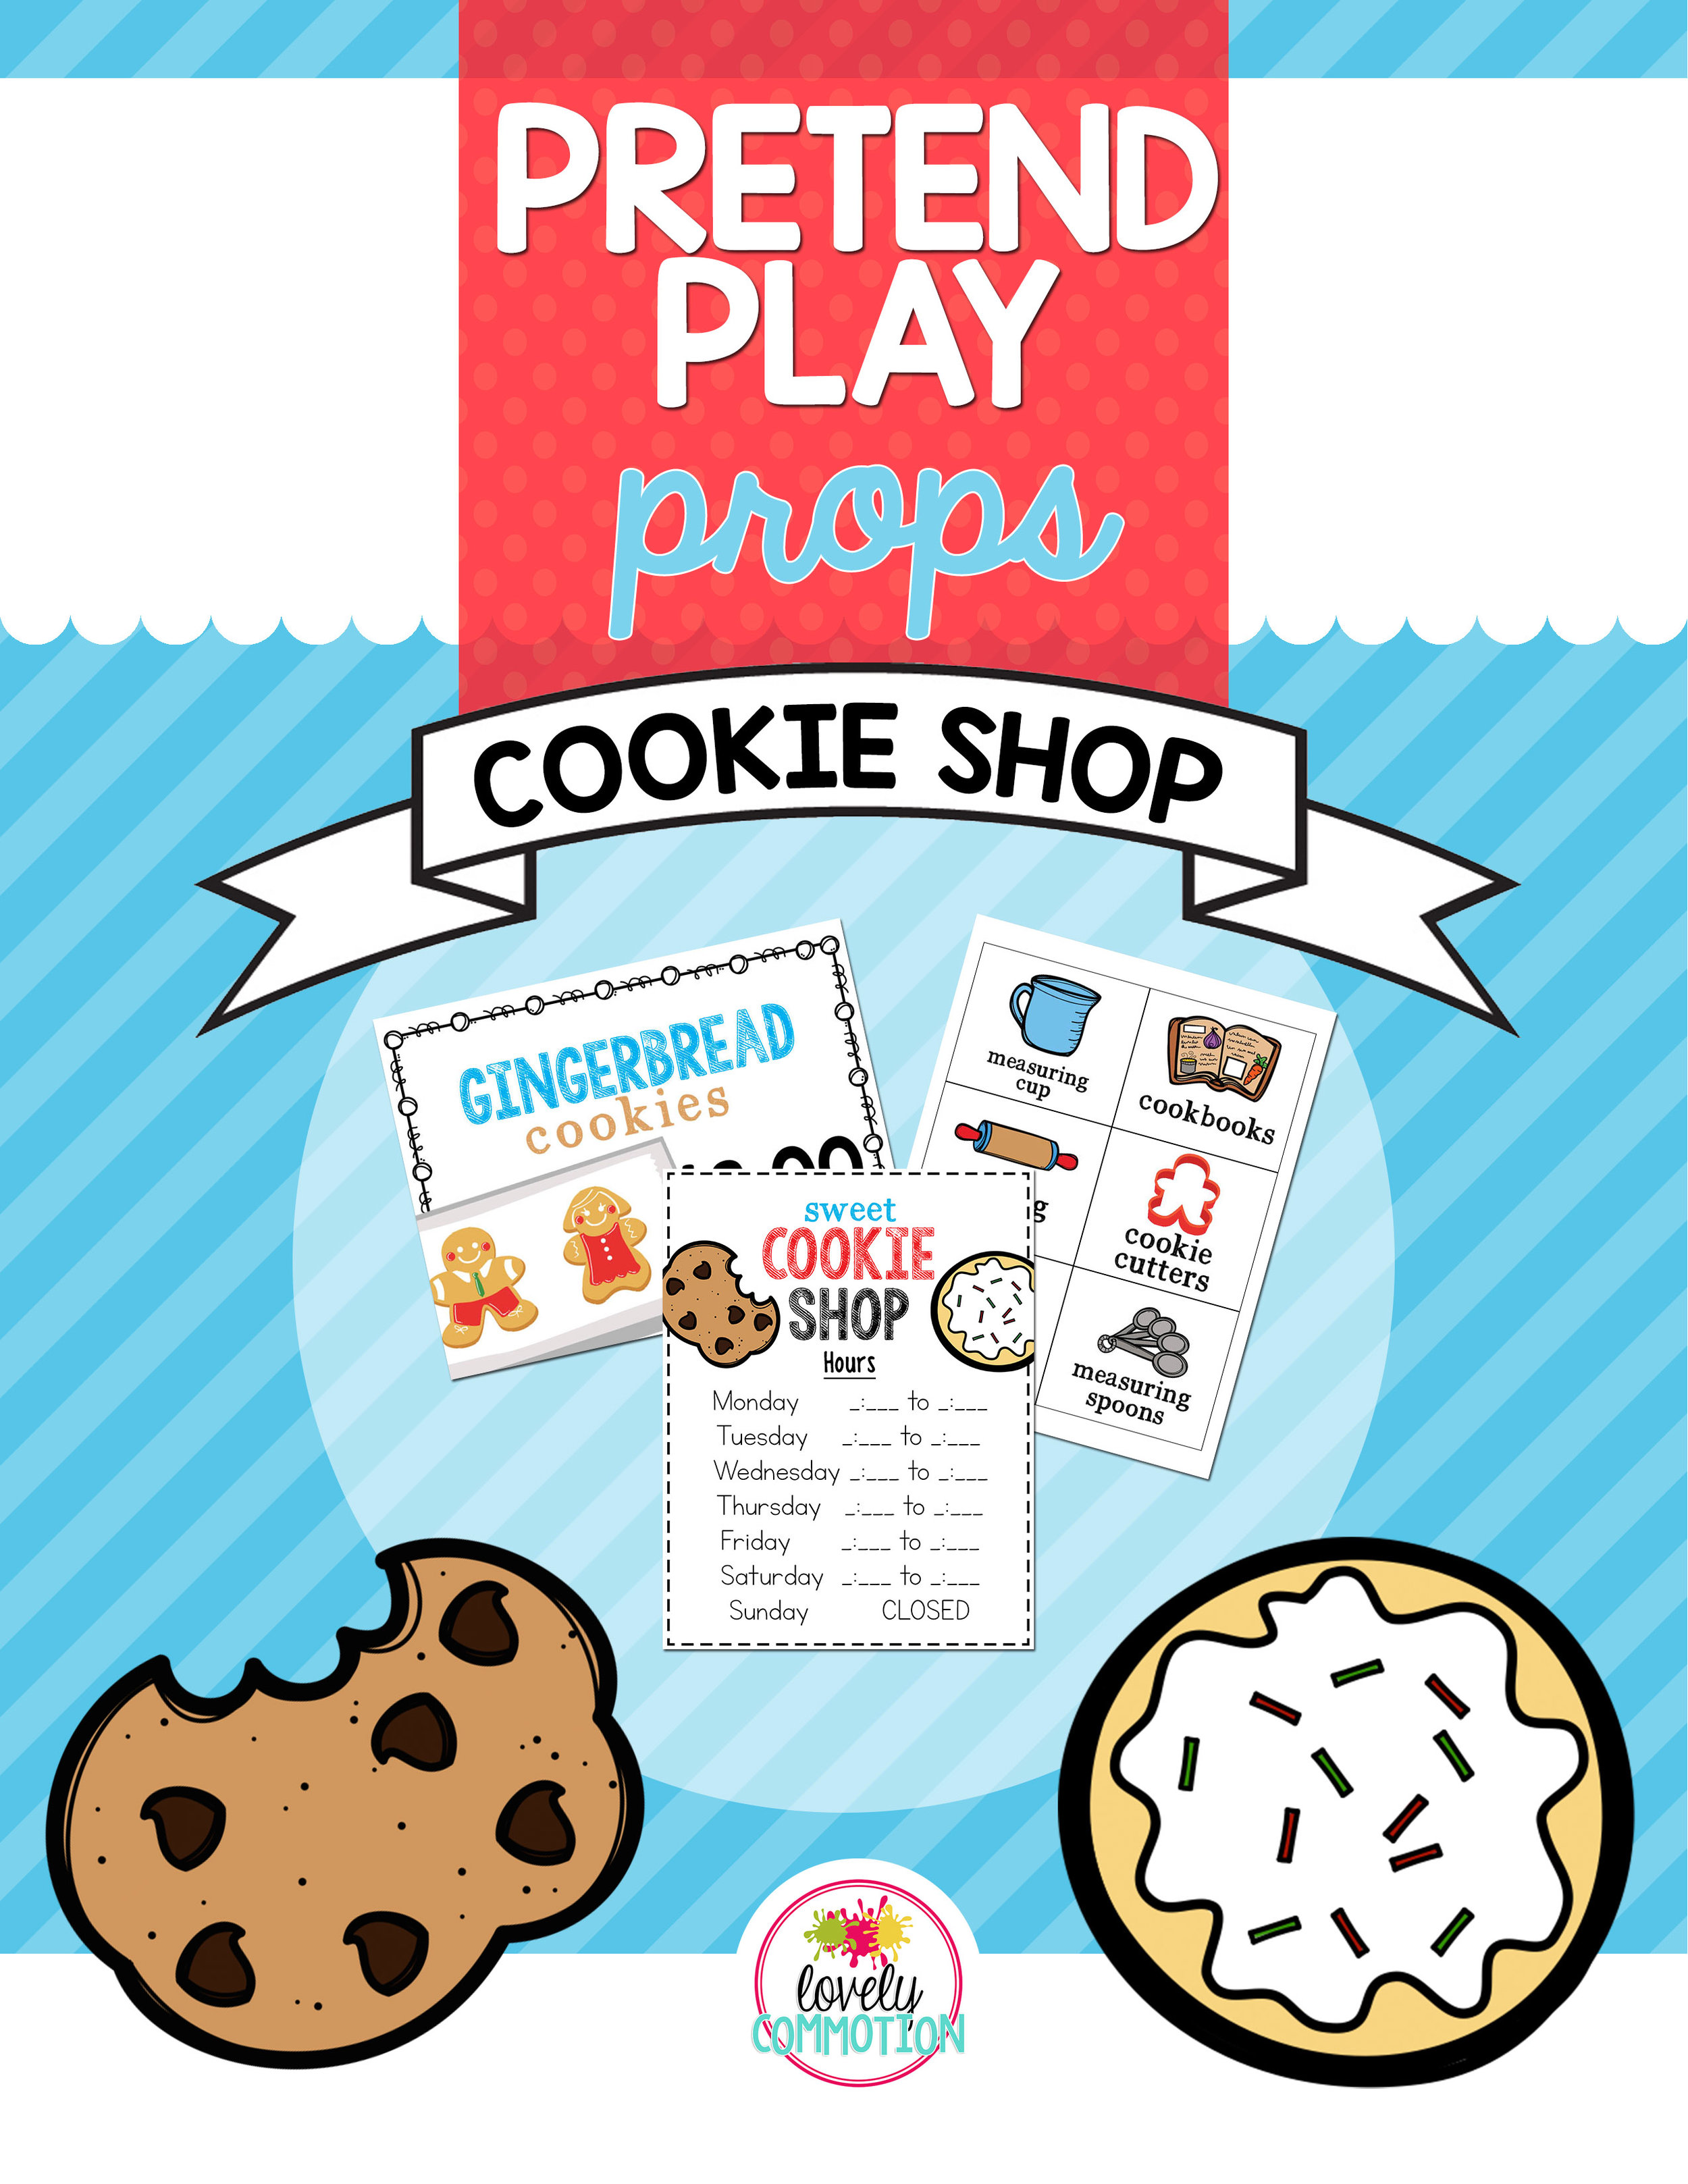 Pretend Play Cookie Shop